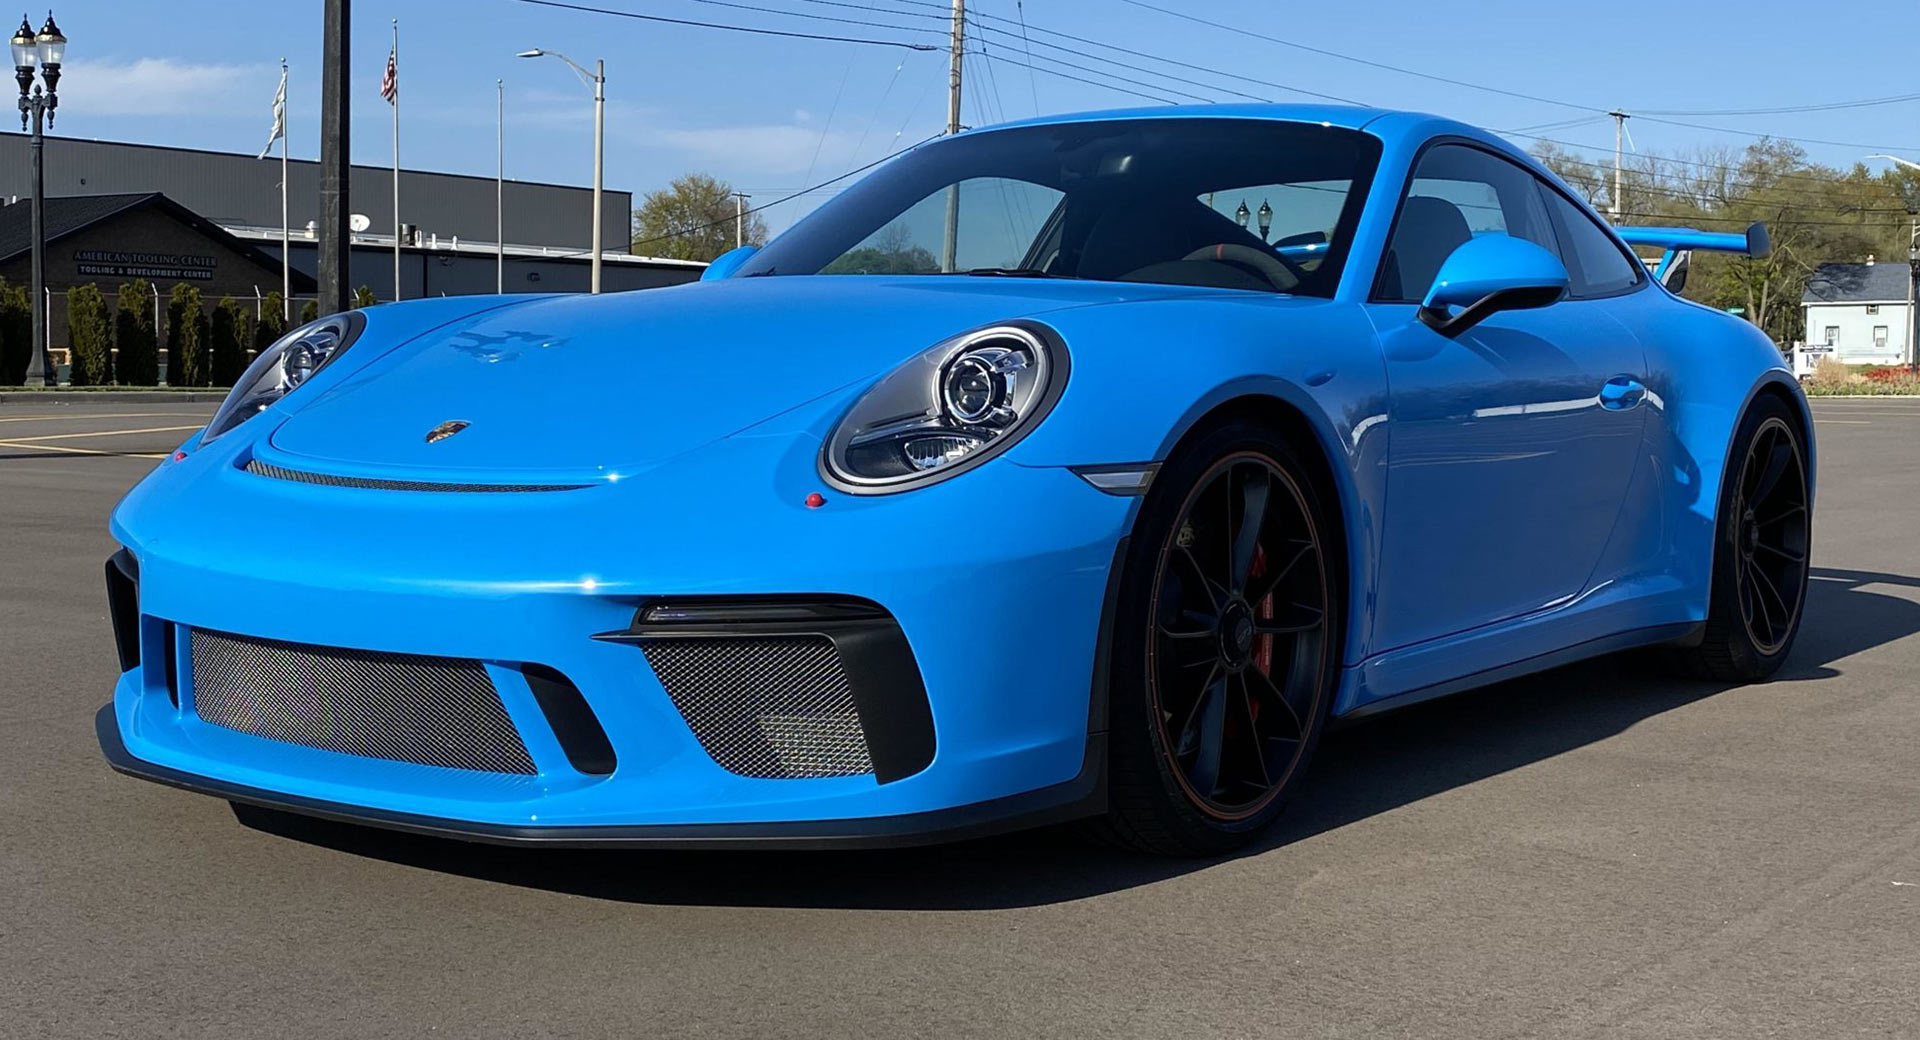 Who Needs An Rs Badge When You Can Get This Mexico Blue Porsche 911 Gt3 Carscoops